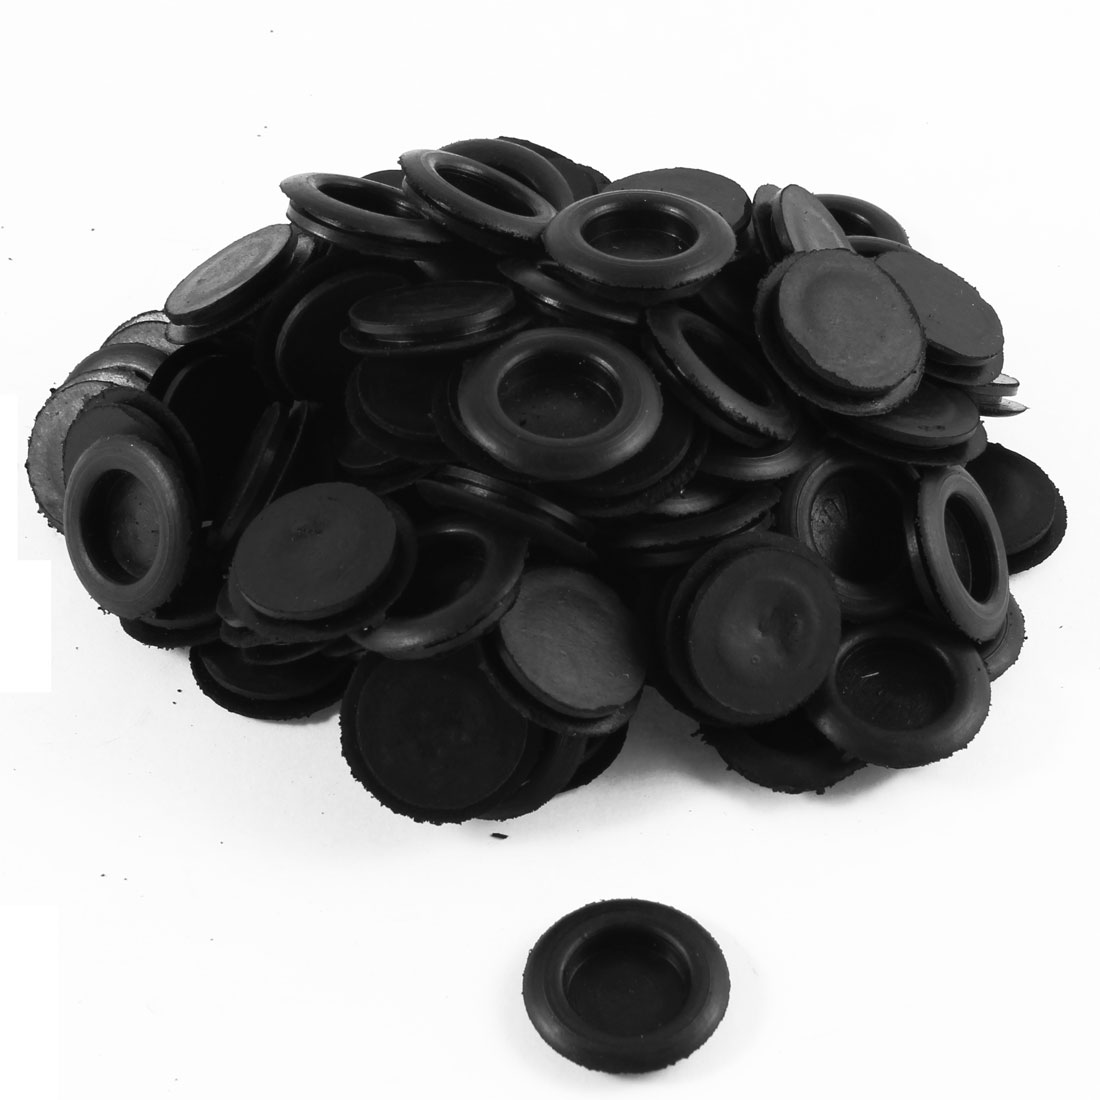 100 Pcs Black Single Side Rubber Grommets Wire Cable Protector 20mm Diameter